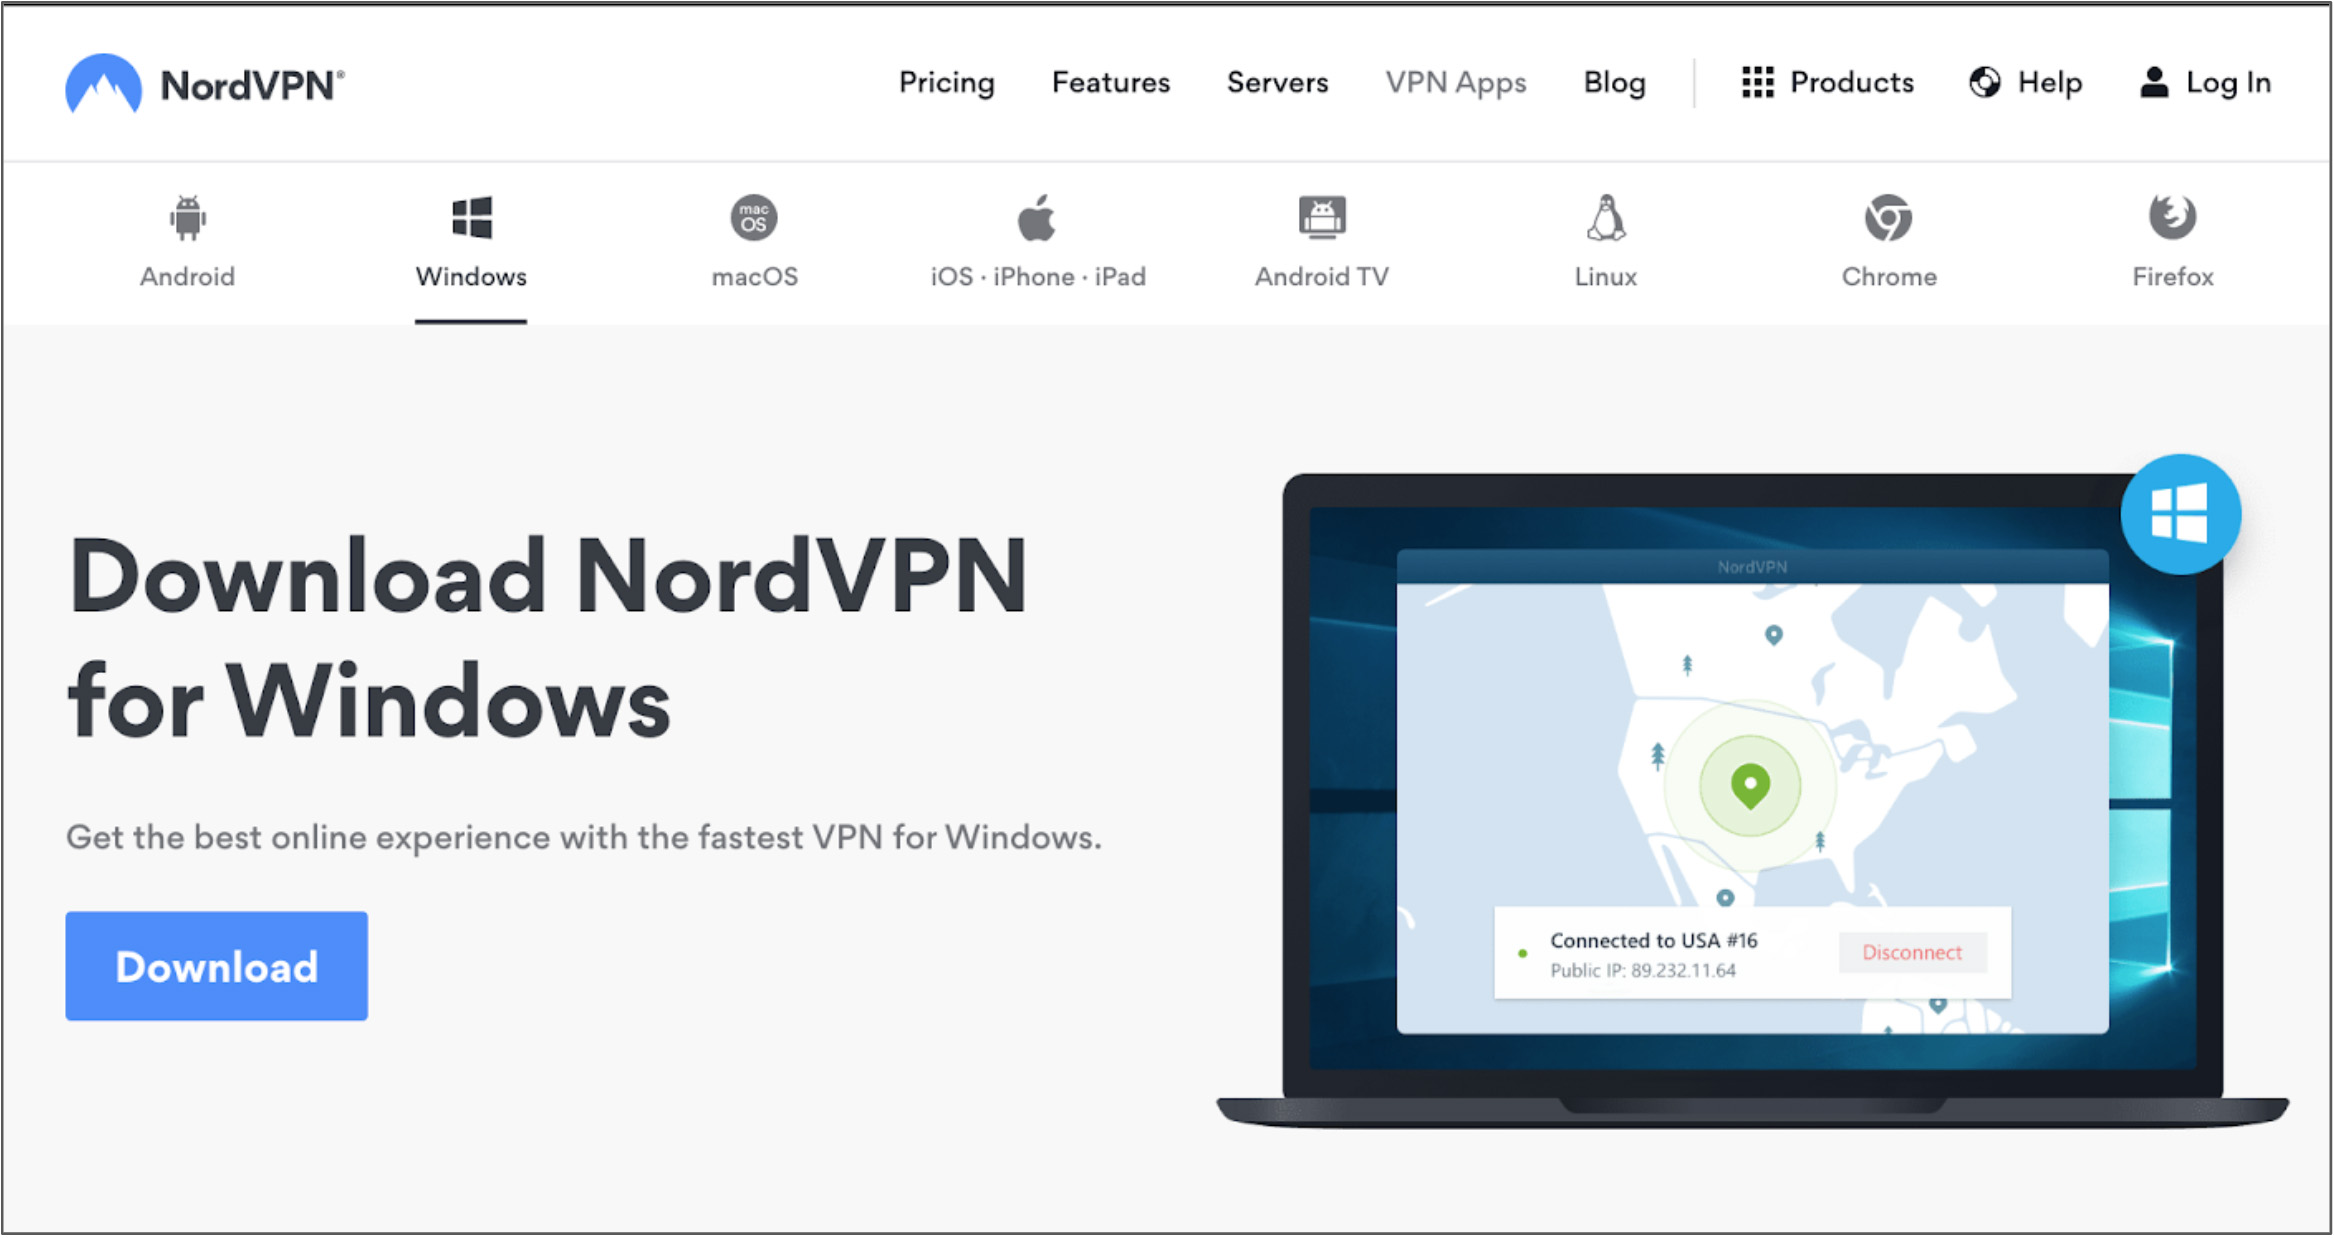 Screenshot of NordVPN's vendor welcome page for its Windows apps with product information and purchasing links.